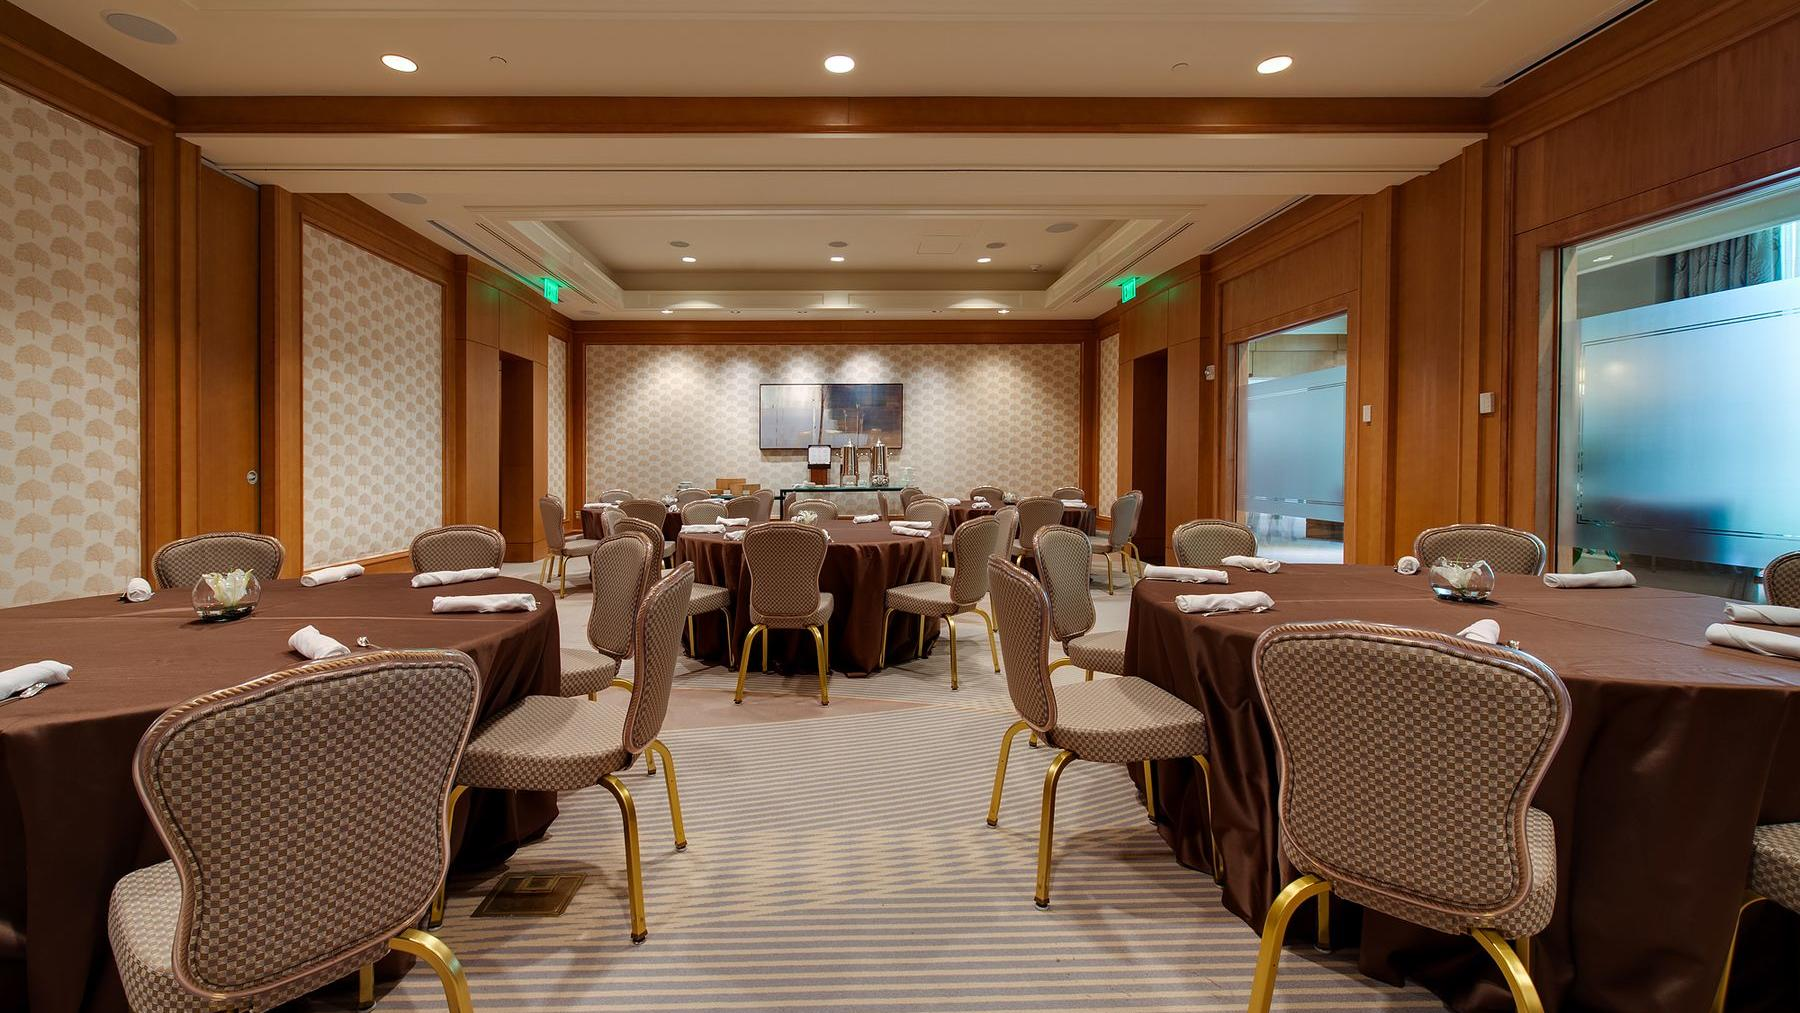 room with round tables and chairs